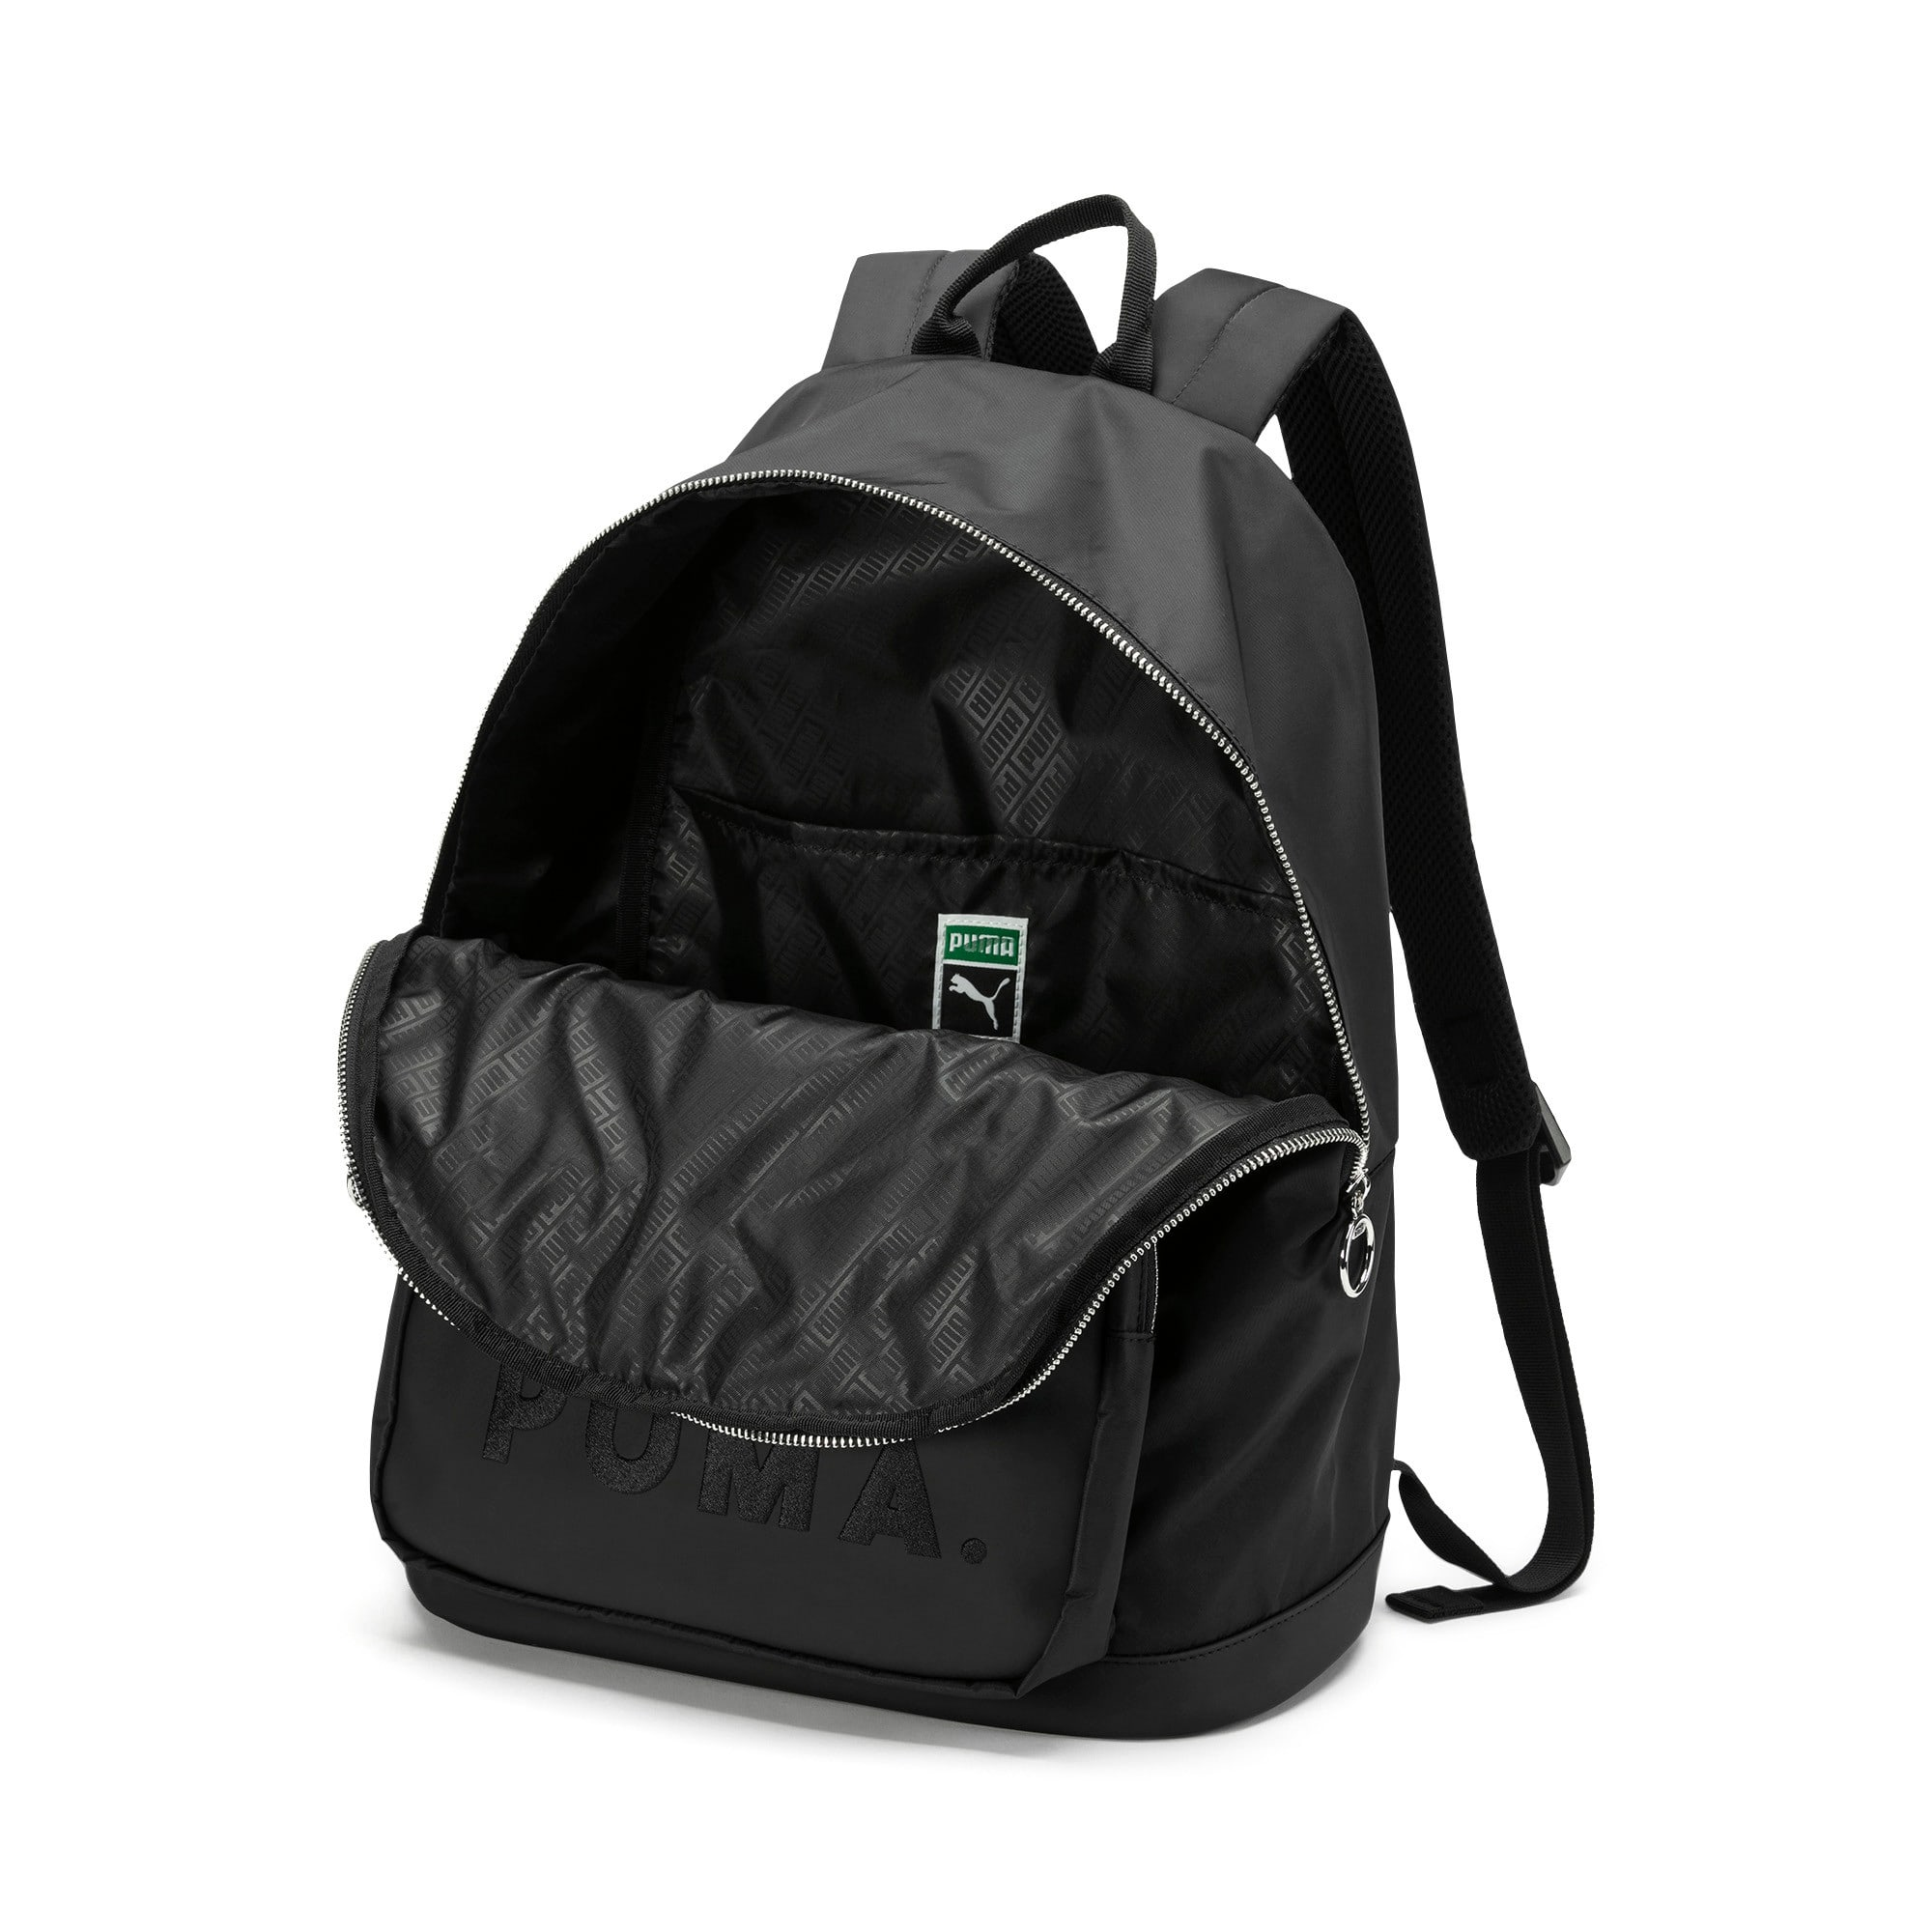 Thumbnail 4 of Originals Trend Backpack, Puma Black, medium